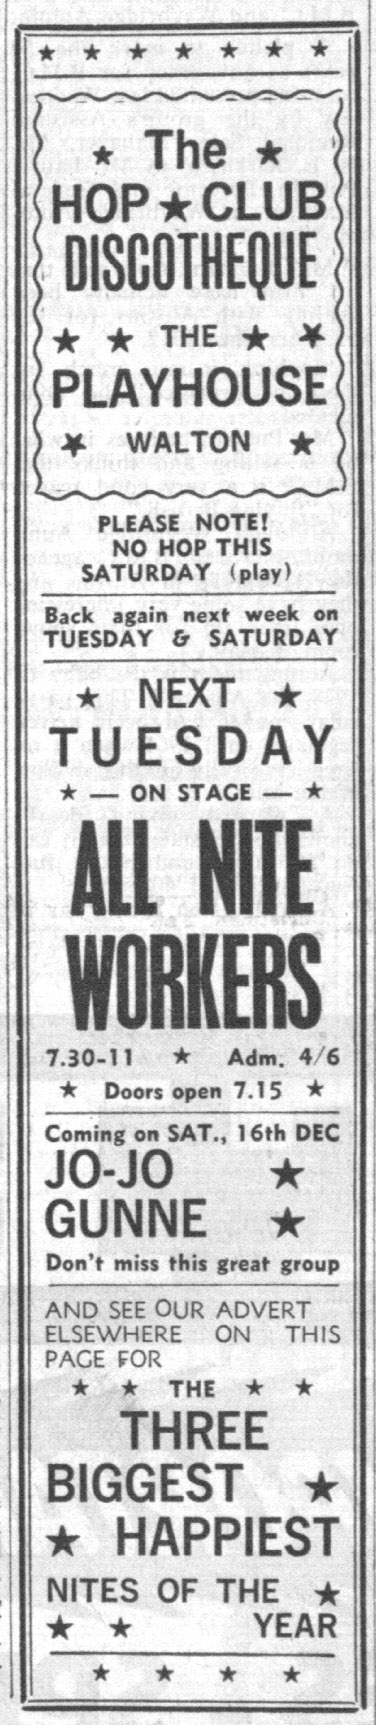 All Nite Workers & Jo-Jo Gunne at the Walton Hop, the Herald & News, Dec. 8, 1967